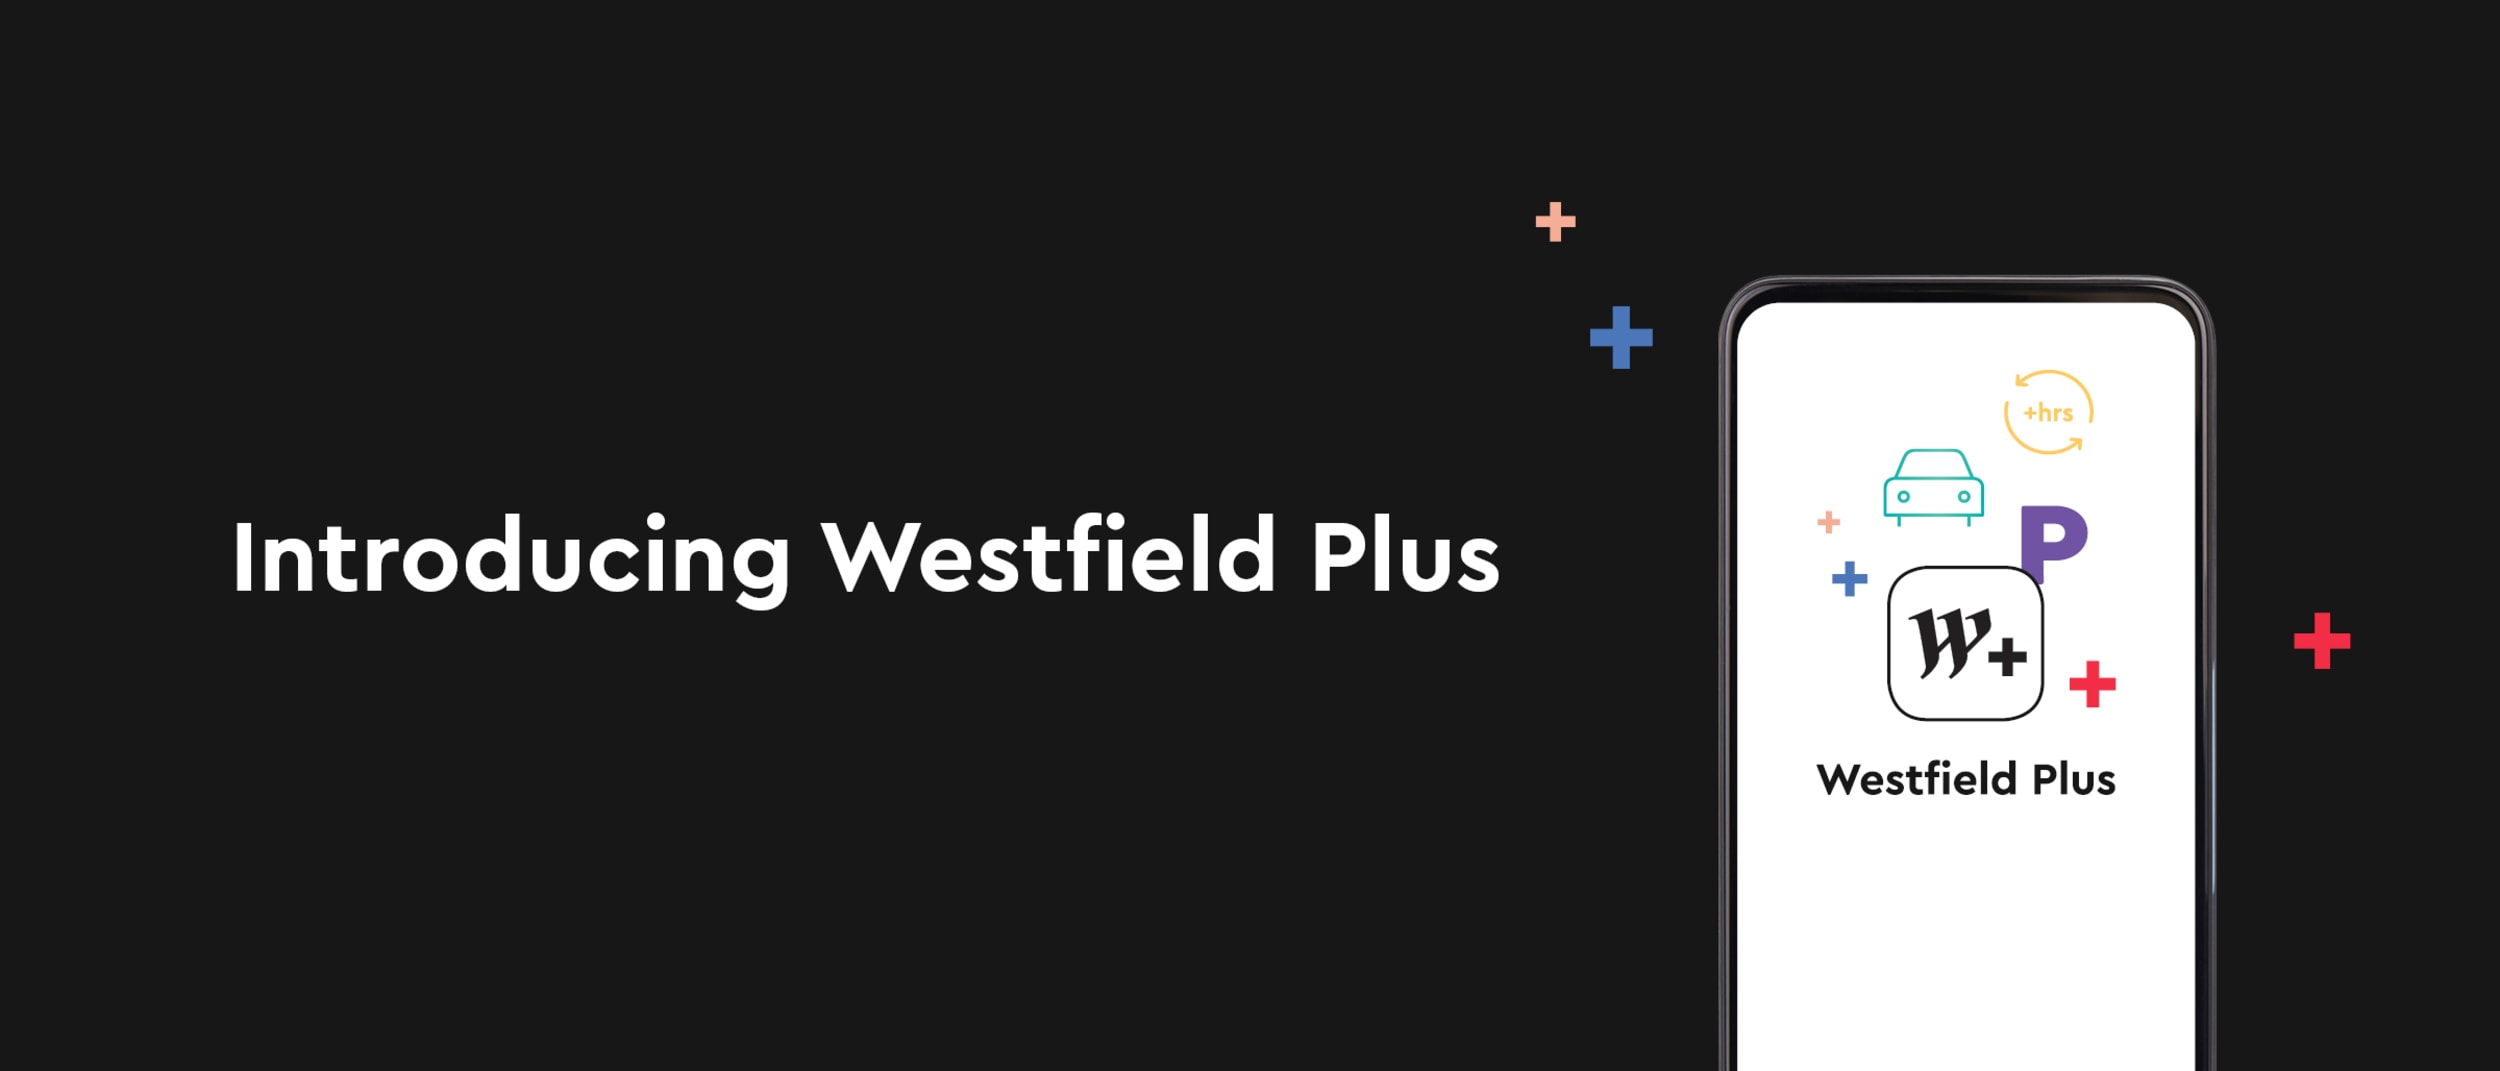 Get the most out of every visit with Westfield Plus